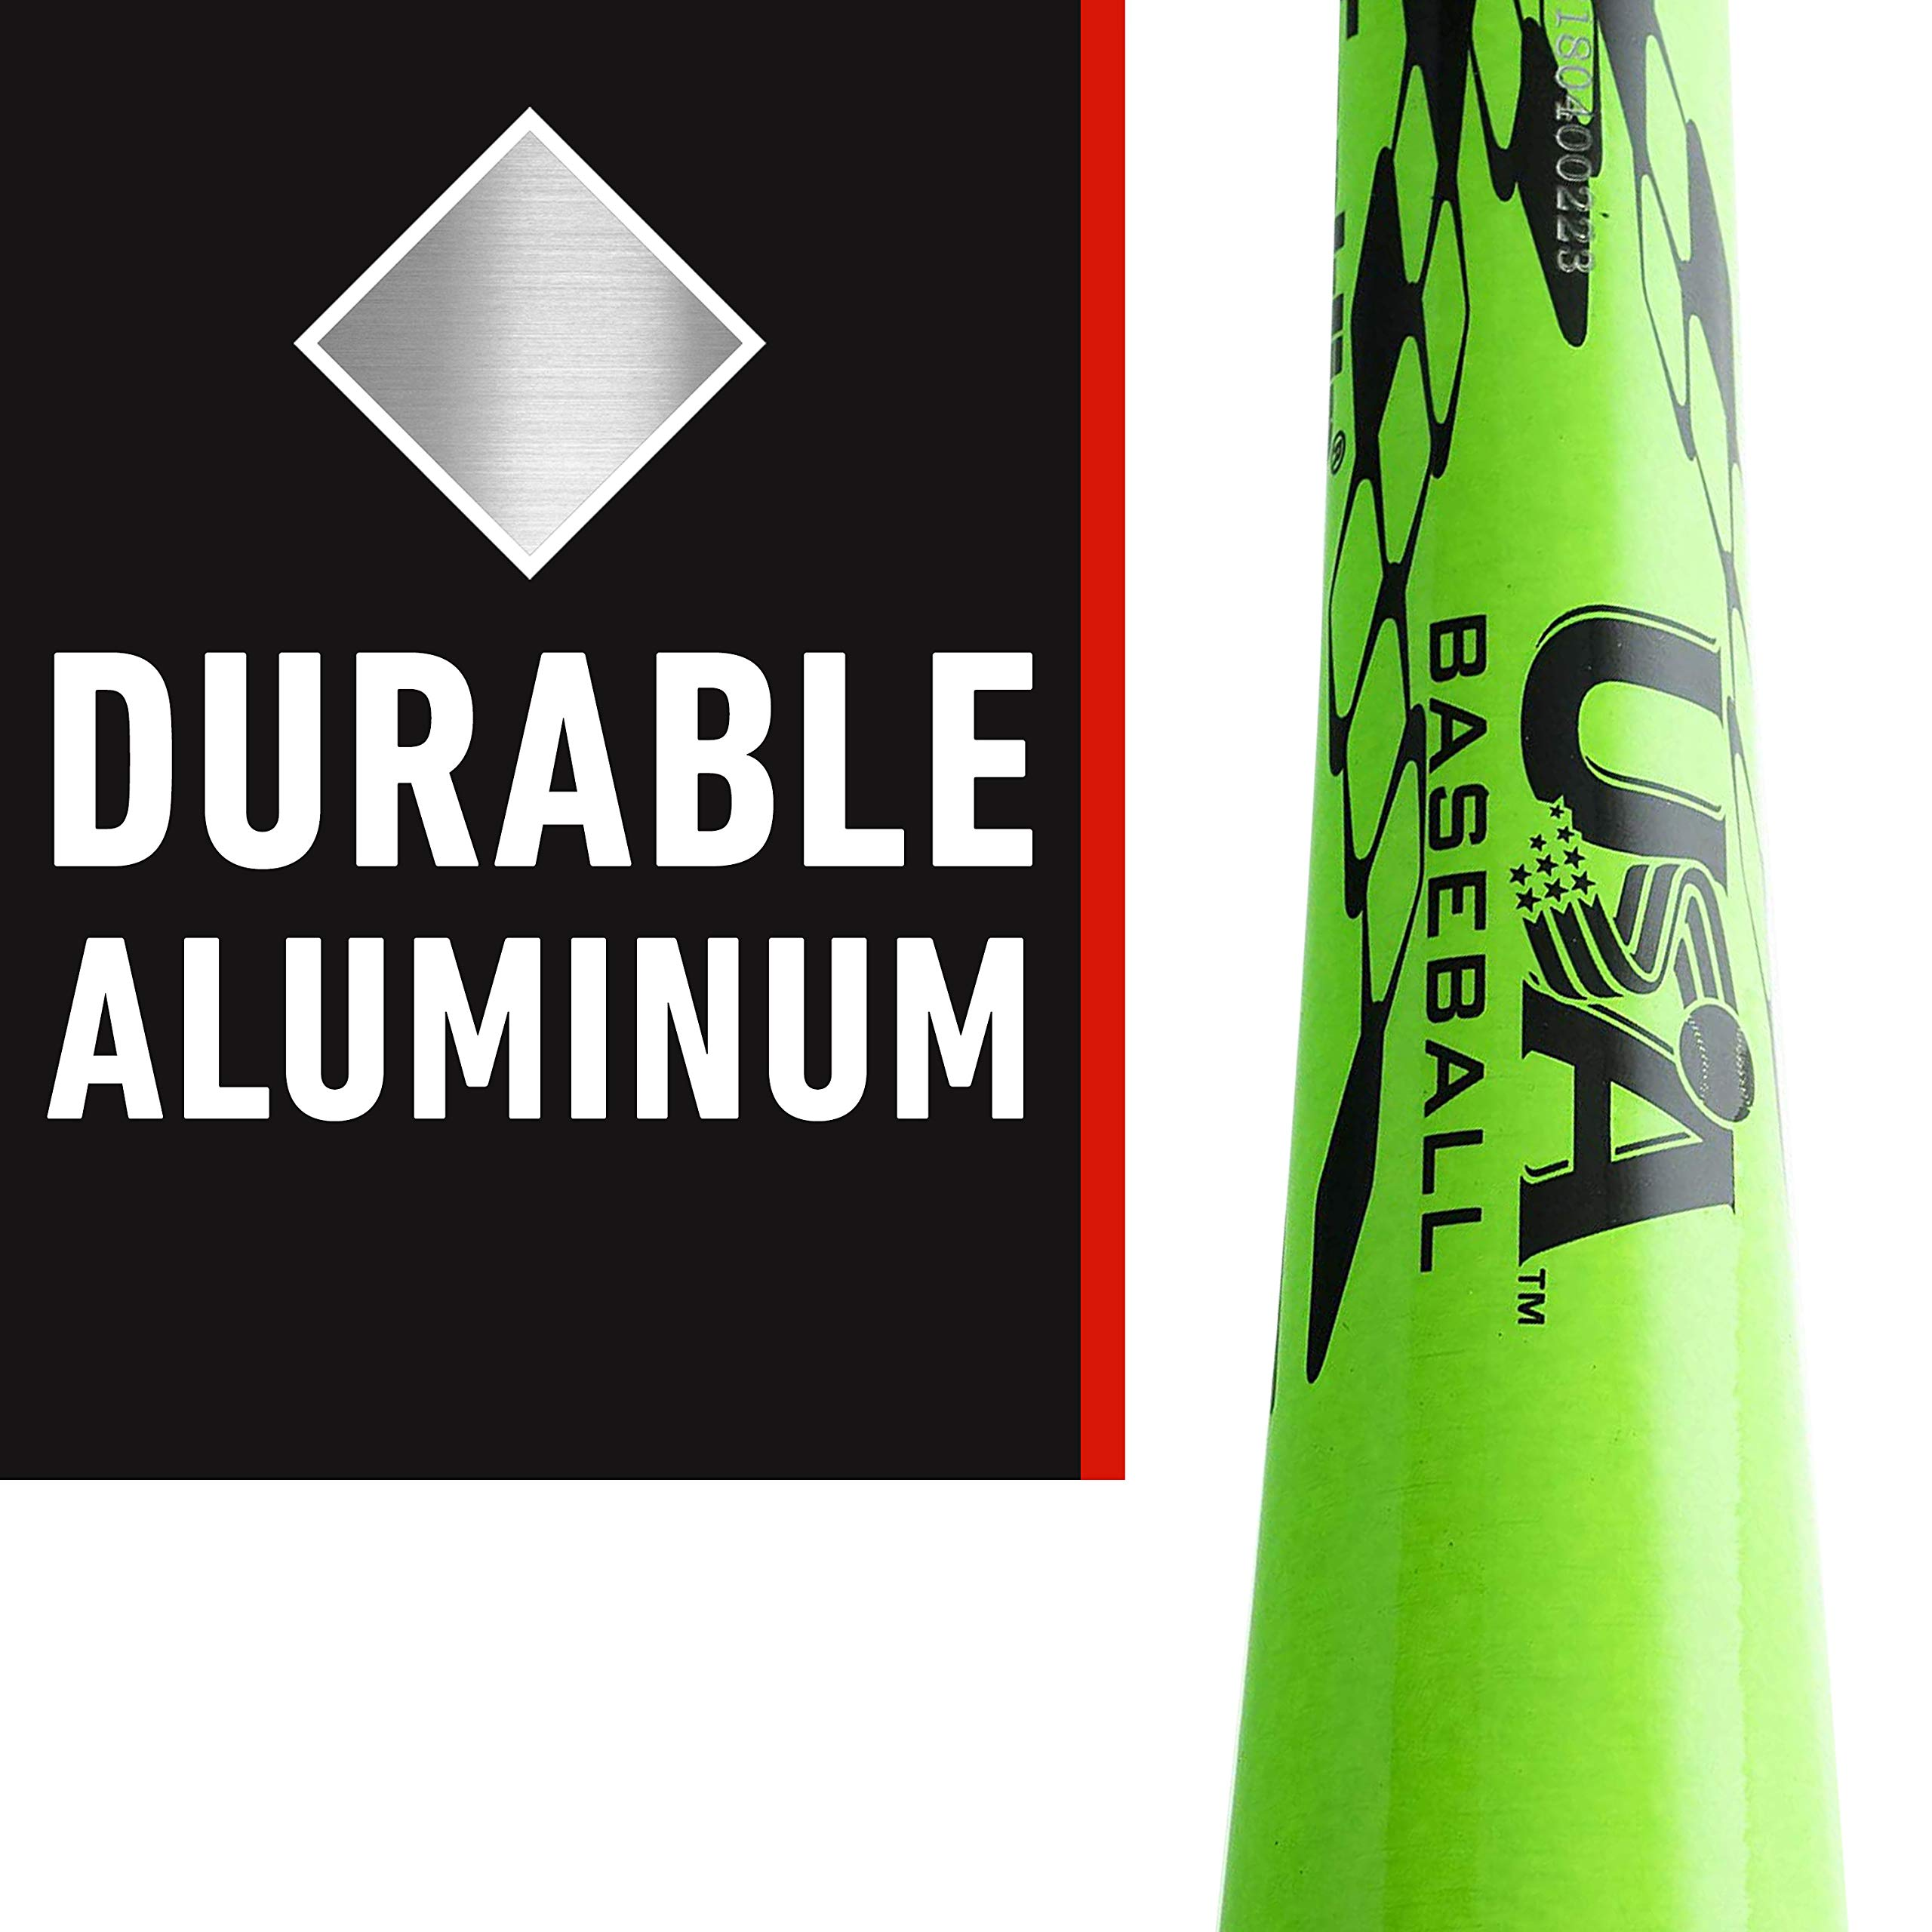 Franklin Sports Venom 1000 Official Teeball Bat - 26'' (-10) - Perfect for Youth Baseball and Teeball by Franklin Sports (Image #5)